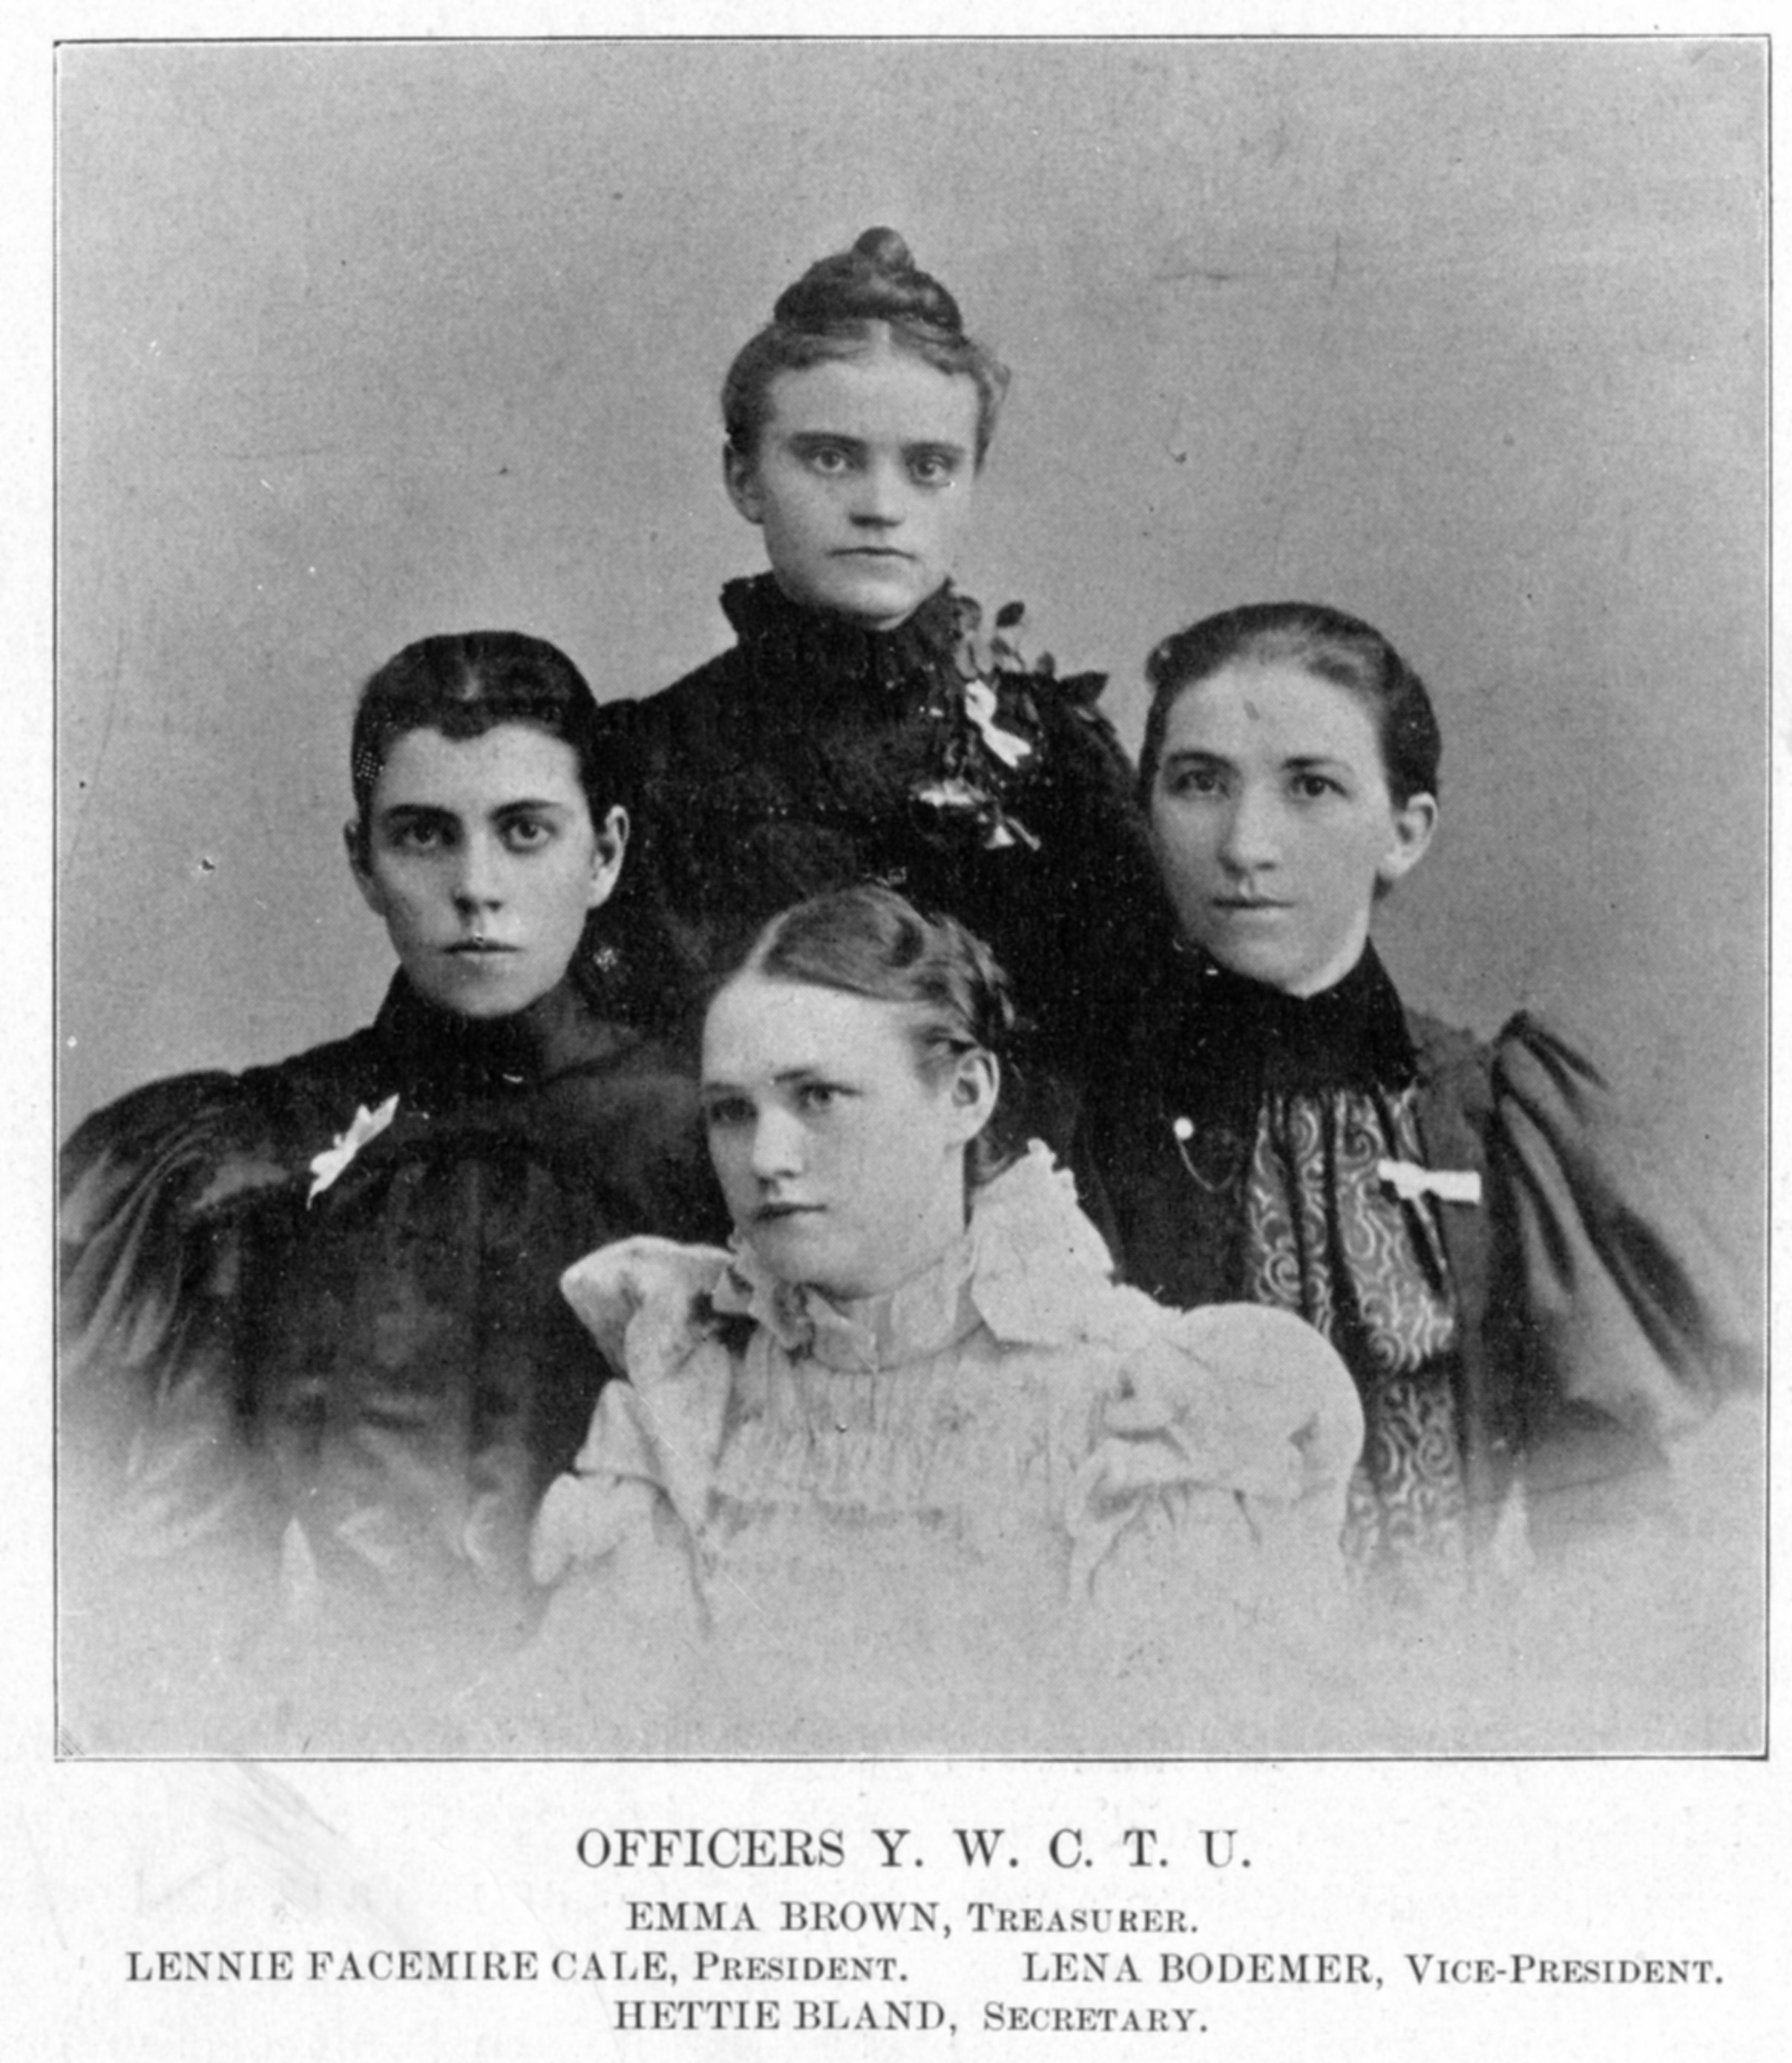 Officers of the Y.W.C.T.U (Young Women Christian Temperance Union)